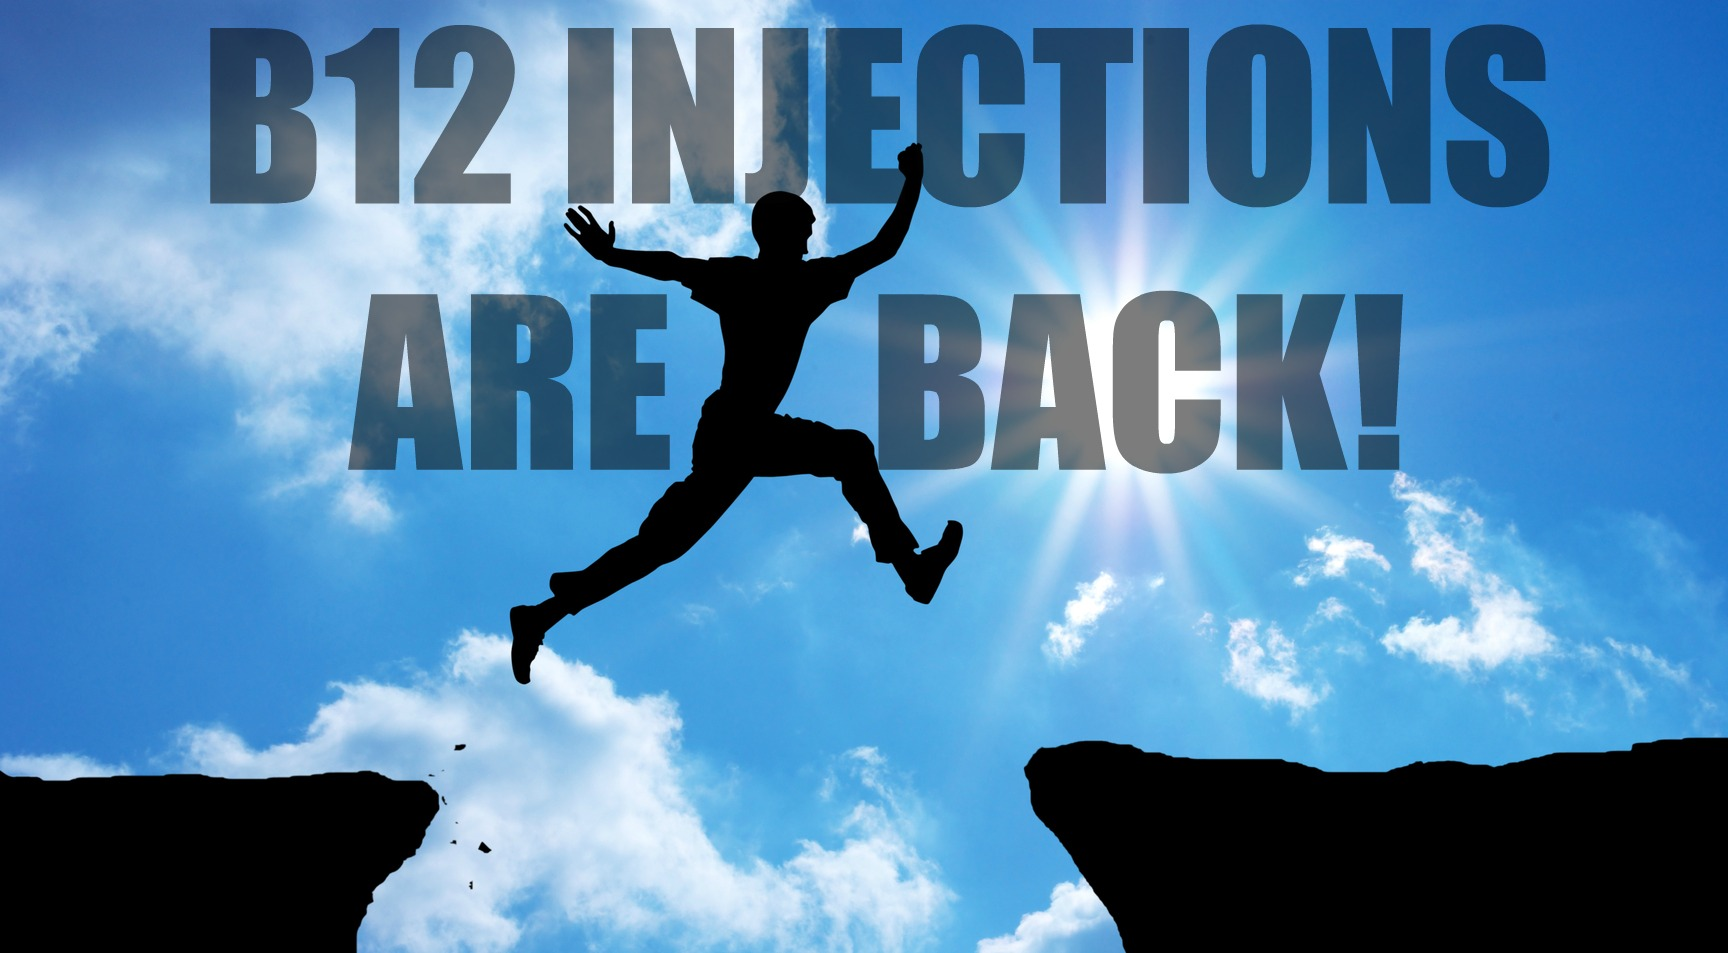 B12 INJECTIONS ARE BACK_1.jpg